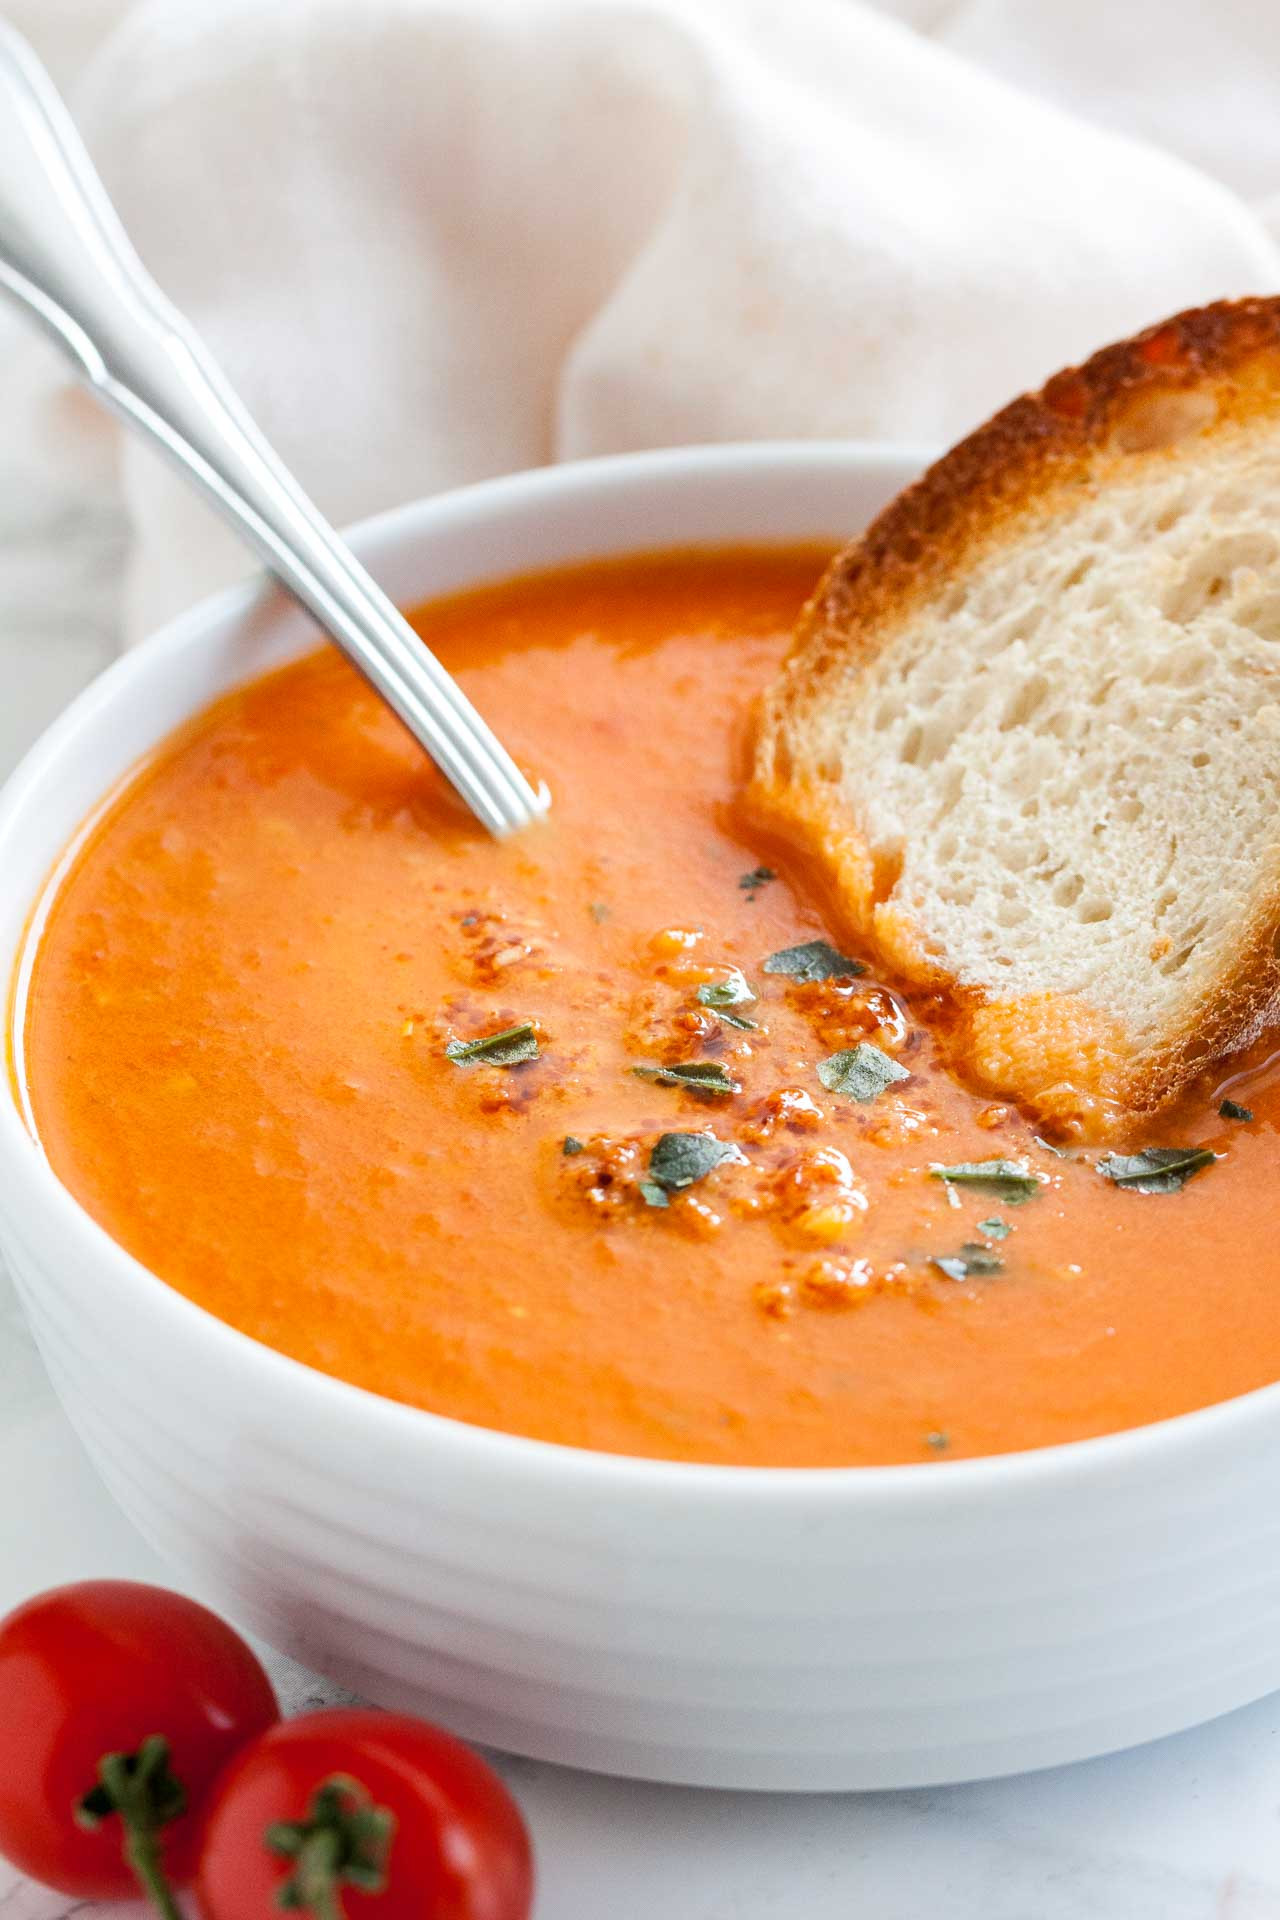 Healthy Tomato Soup Recipe  Creamy Roasted Tomato Soup with Basil